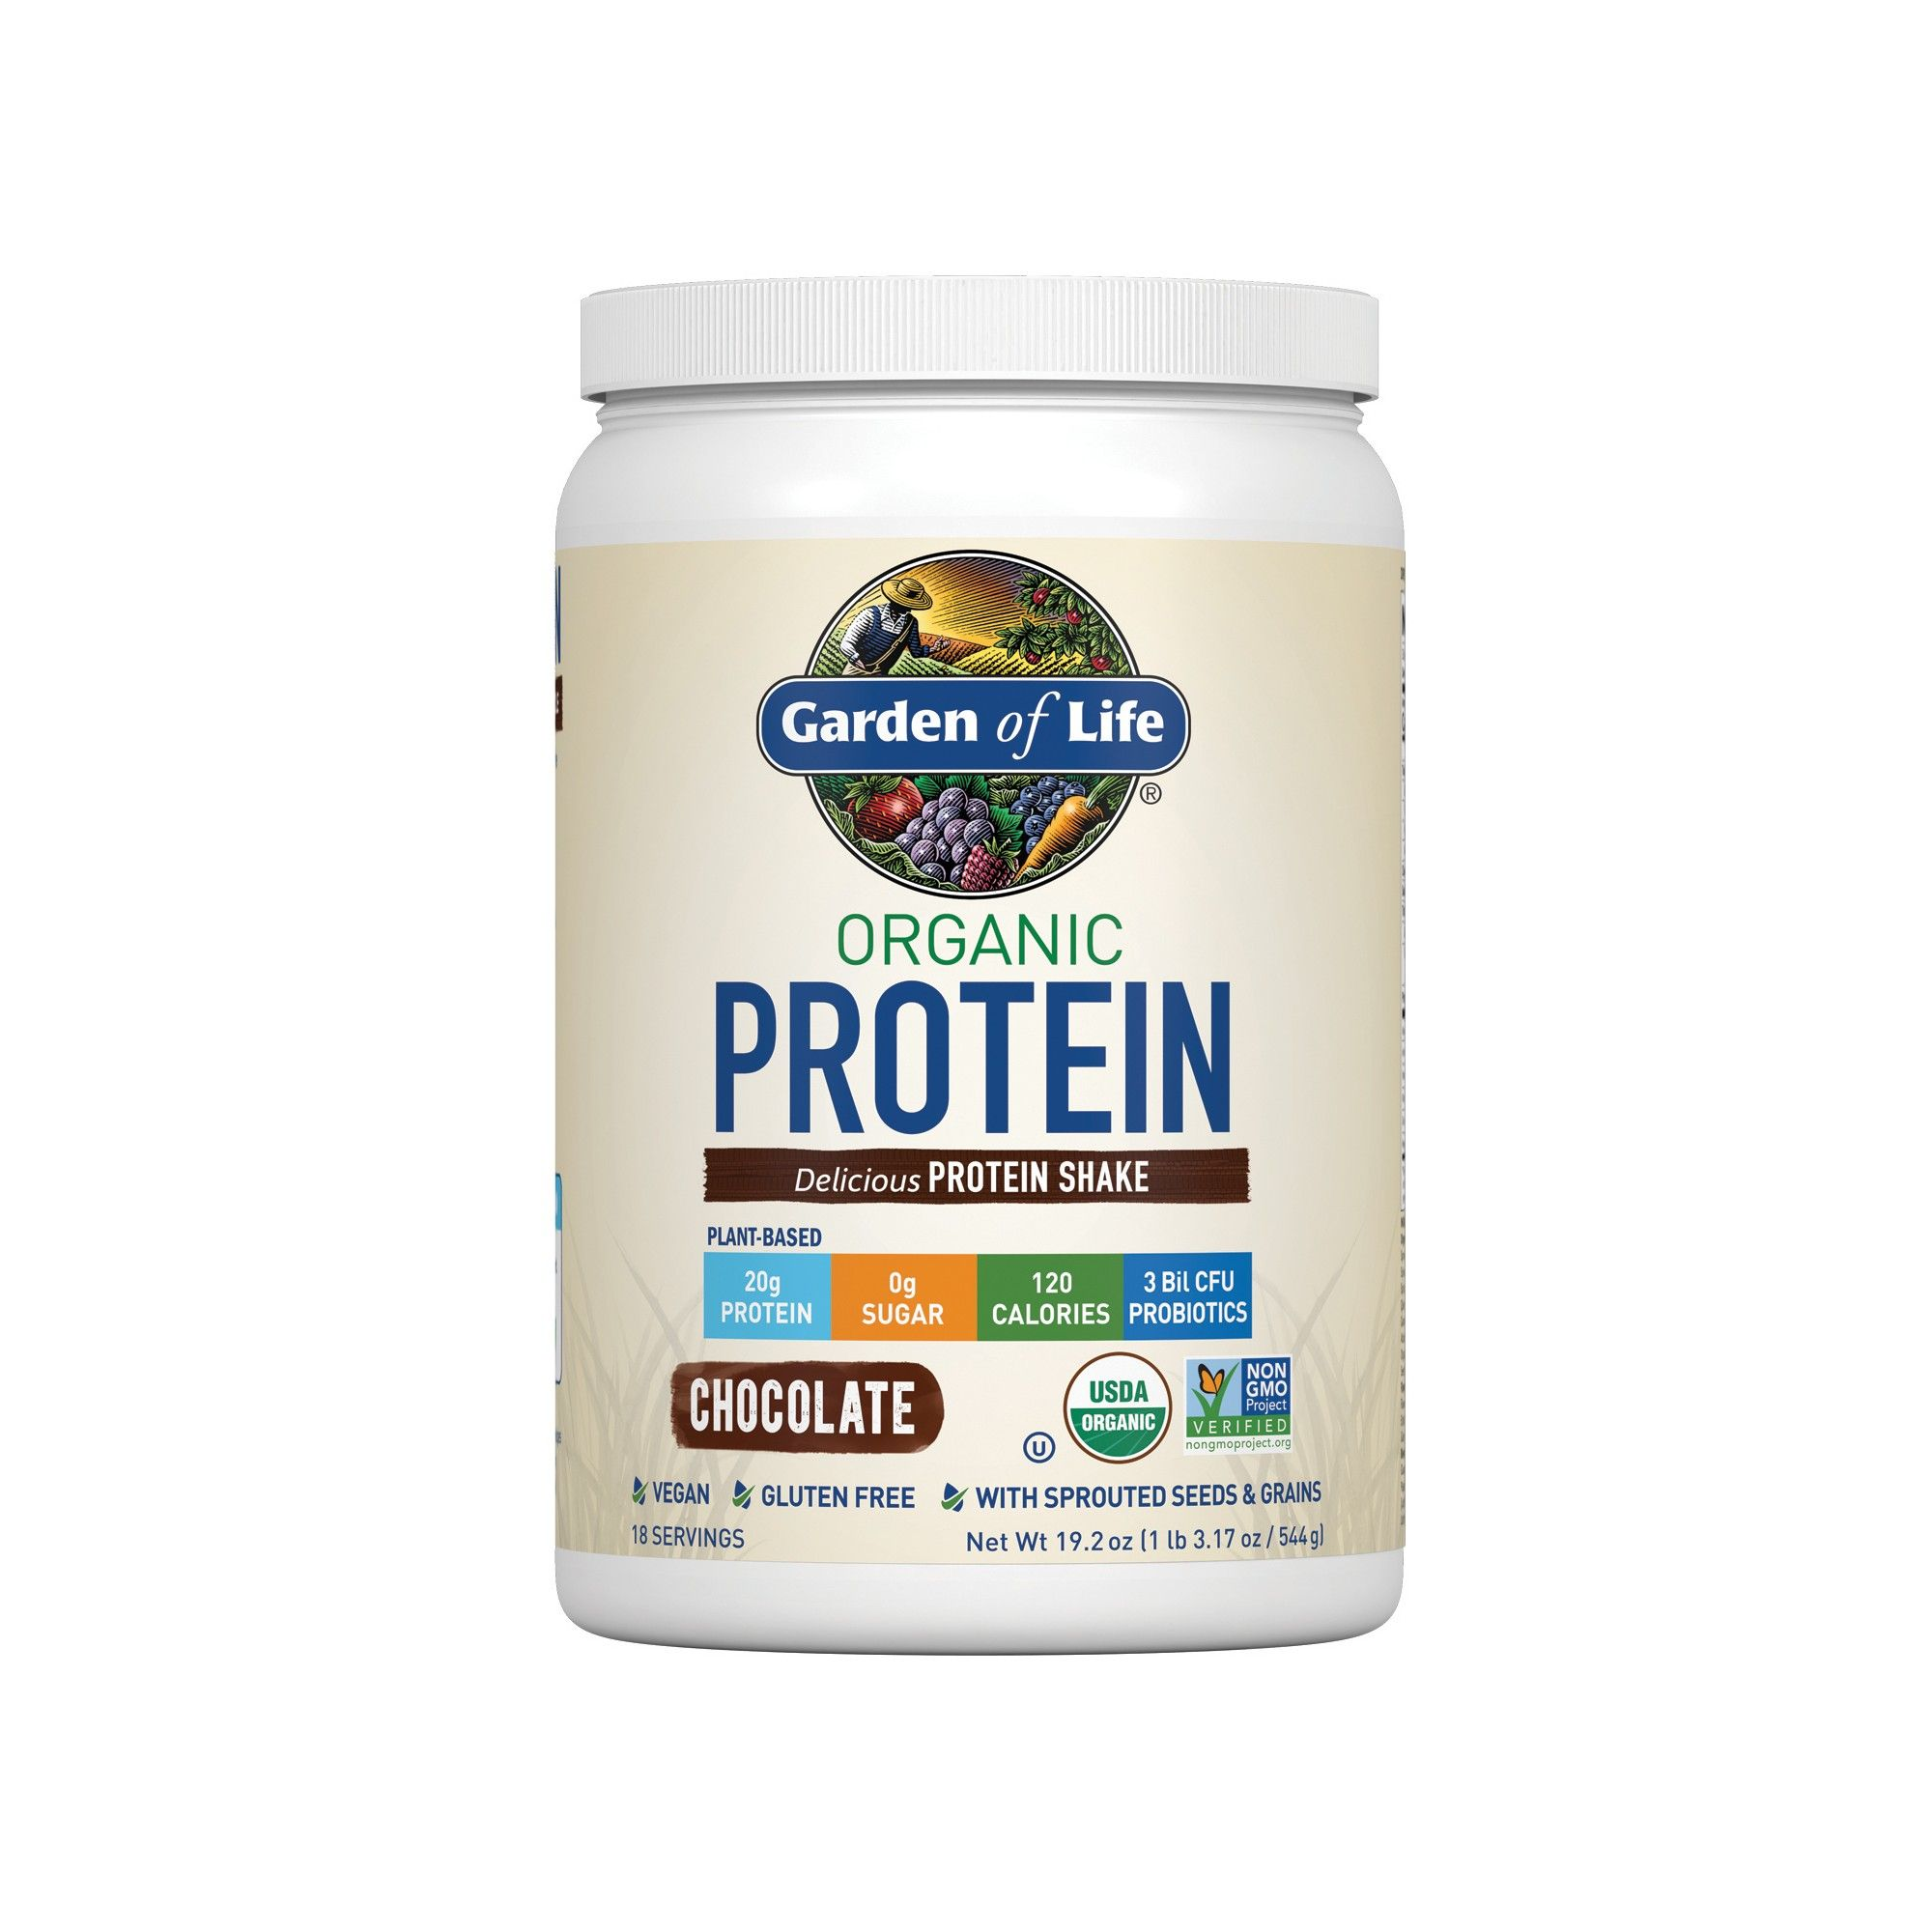 Garden of Life Organic Protein Powder Chocolate 19.2oz